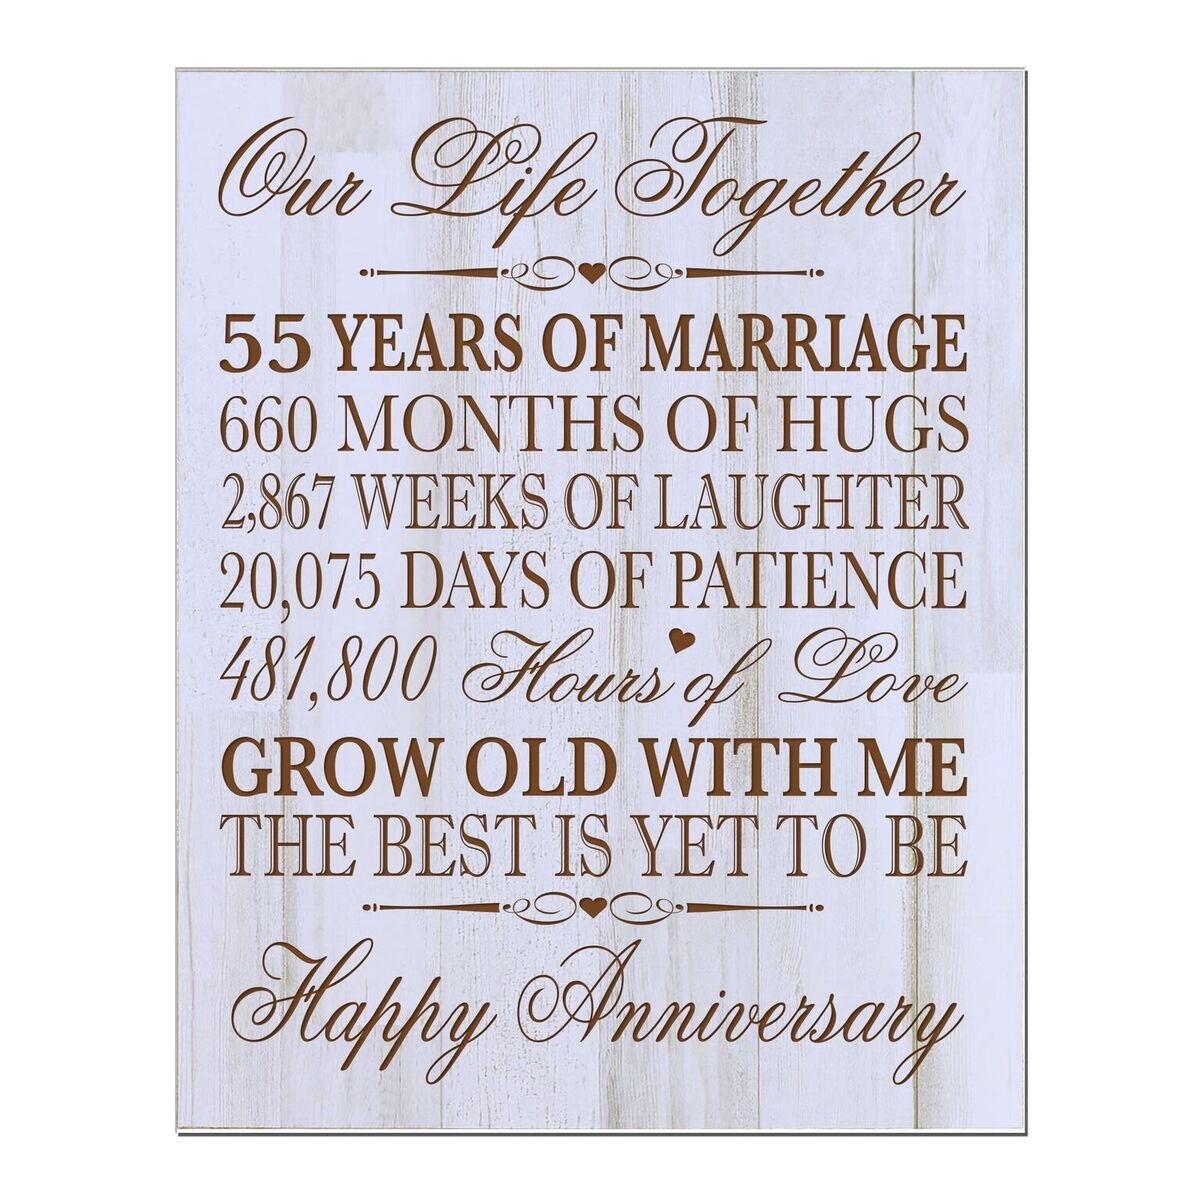 Lifesong Milestones 55th Wedding Anniversary Wall Plaque Gifts For